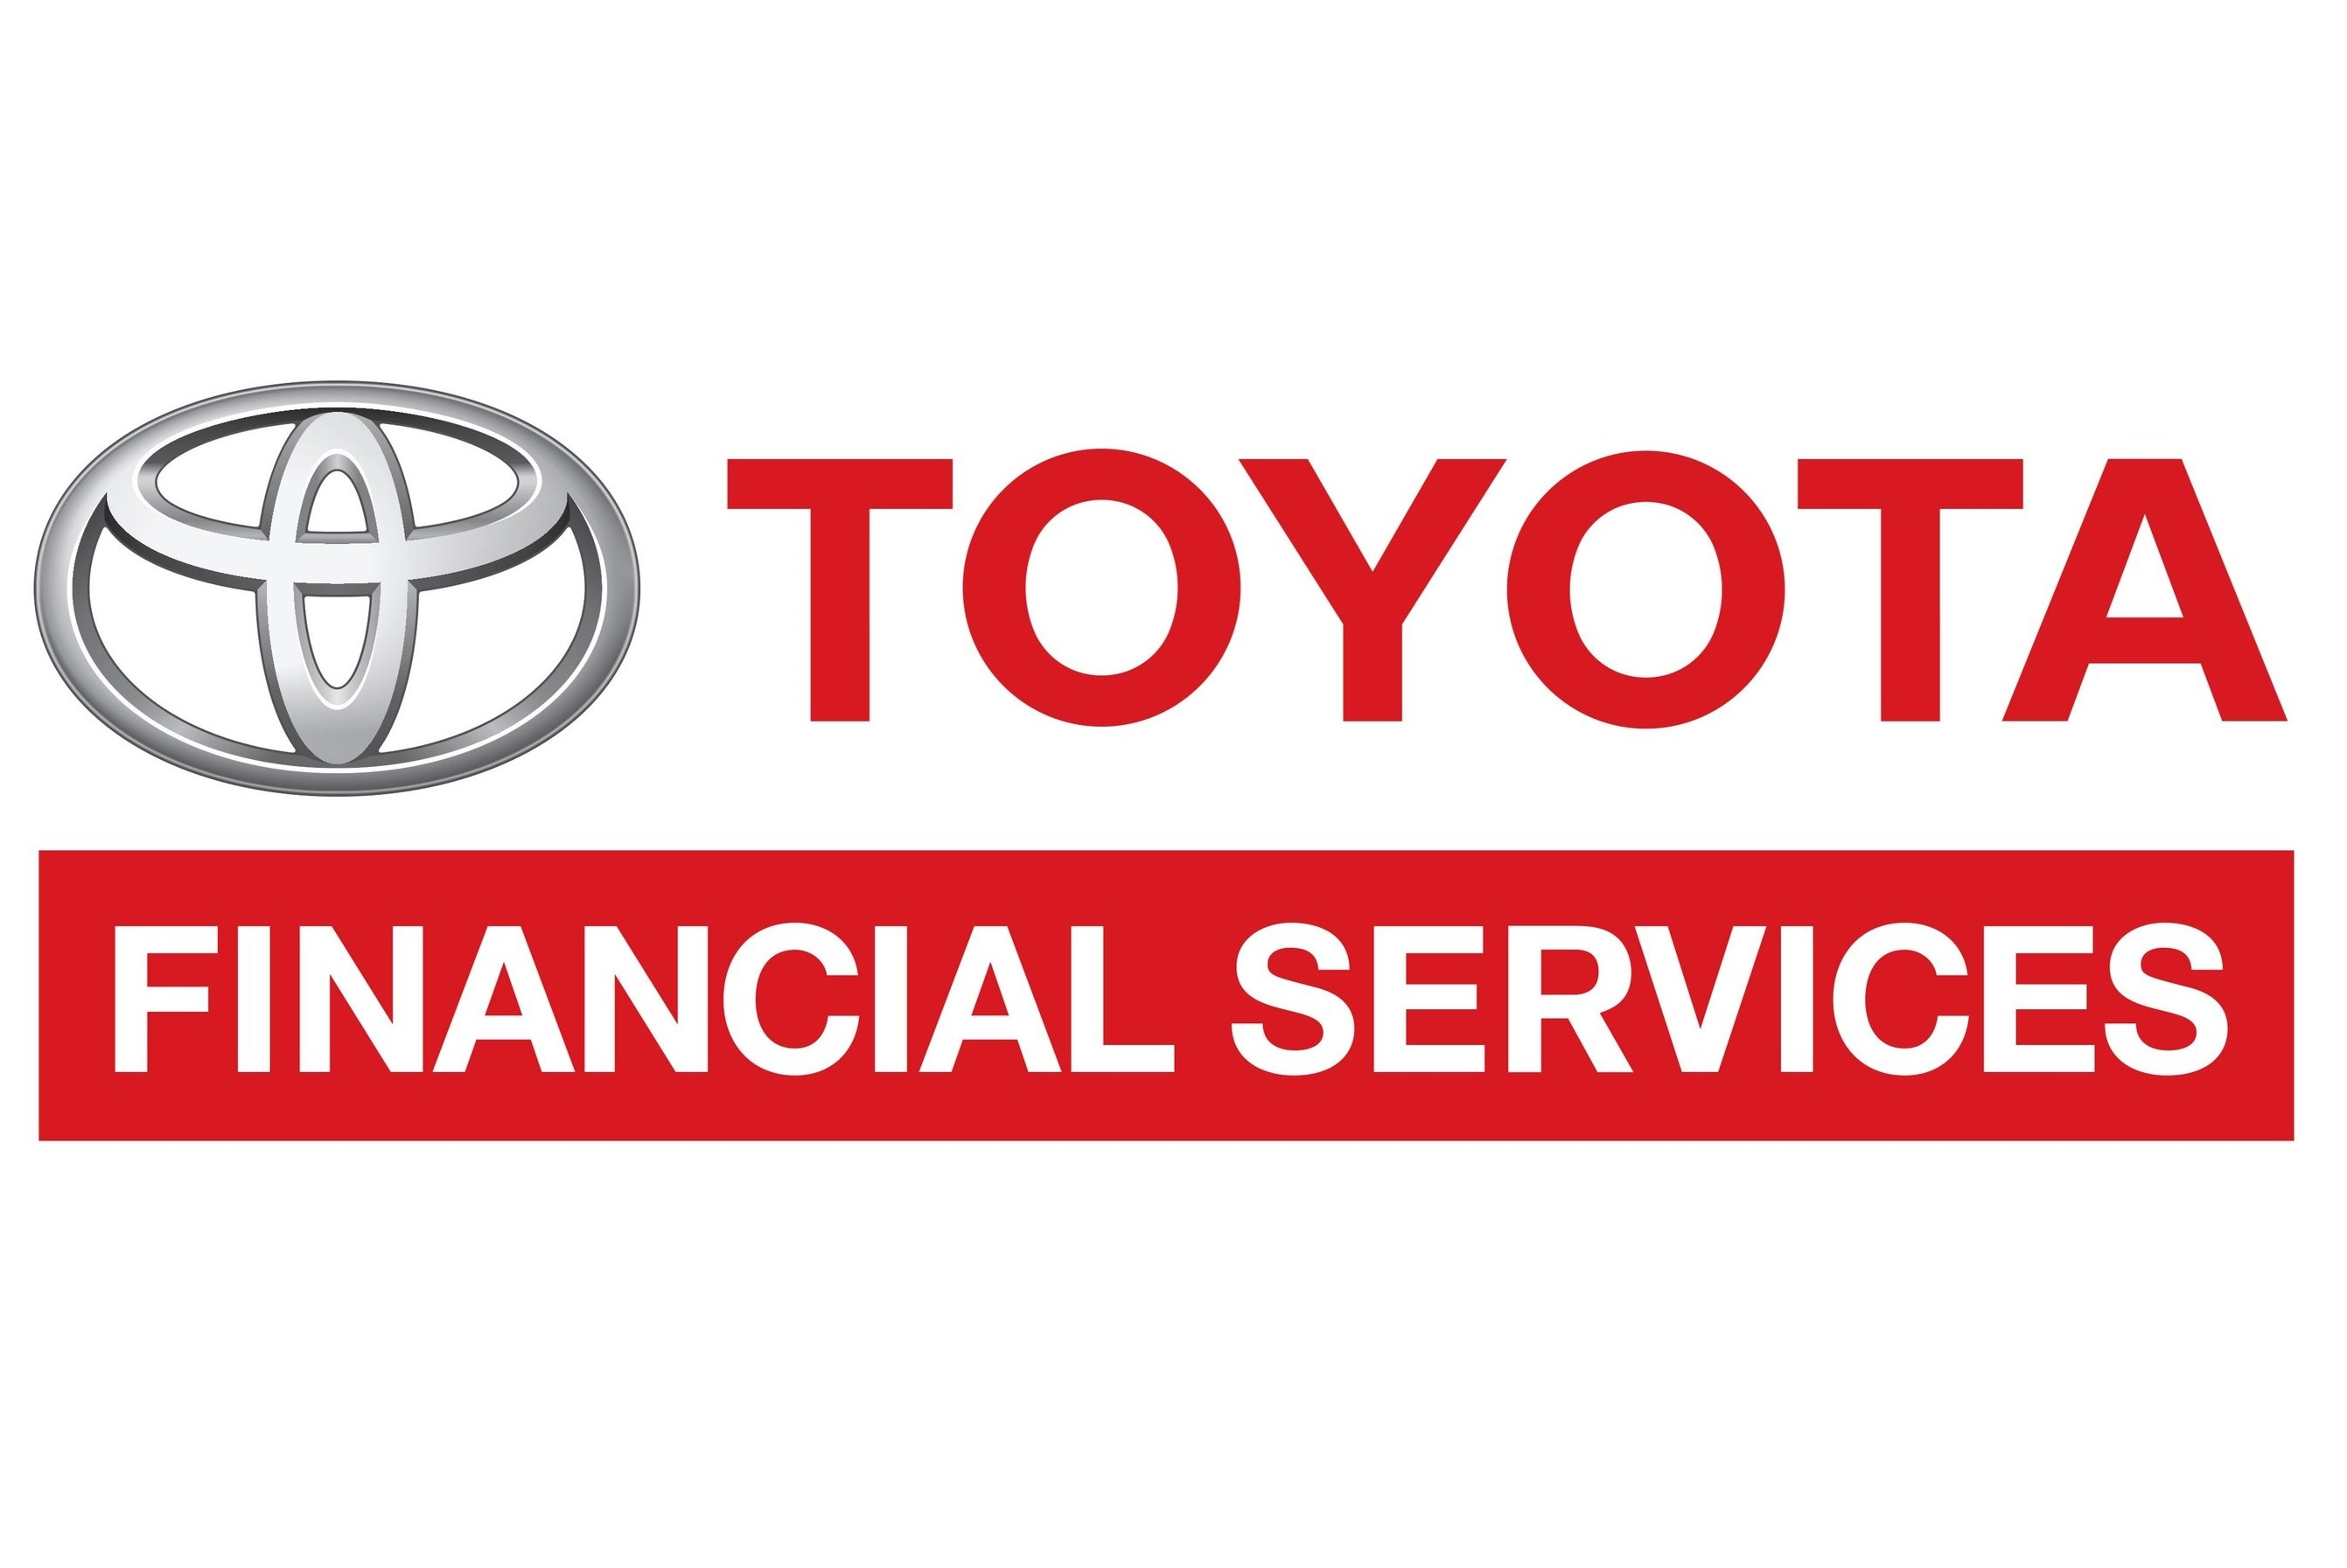 Toyota Financial Services Strengthens Call Centre Capacity To Adapt To Surge Of Financial Relief Requests From Canadian Customers Apr 15 2020